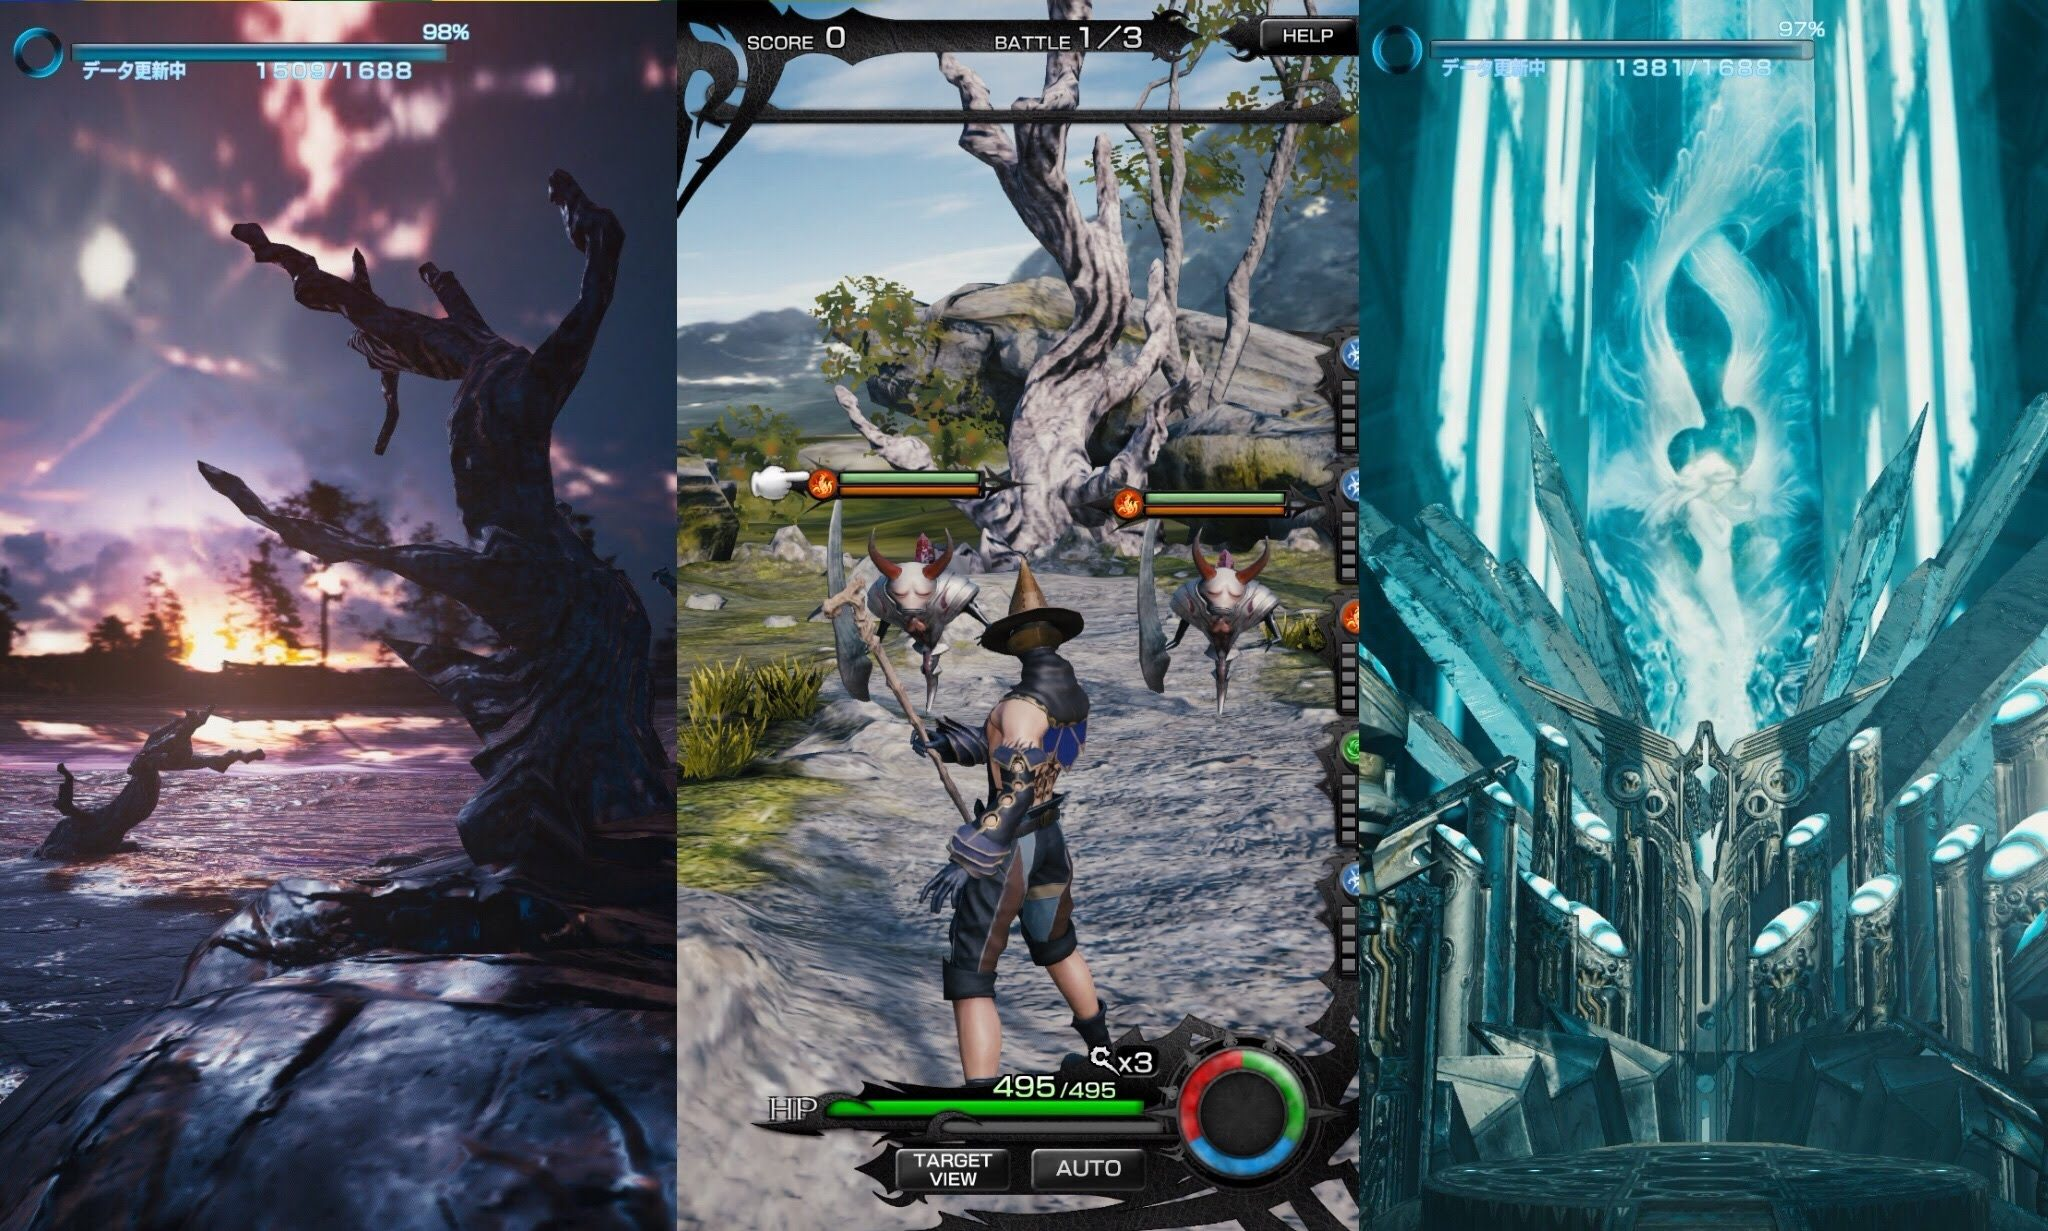 Ff mobius free to play guide